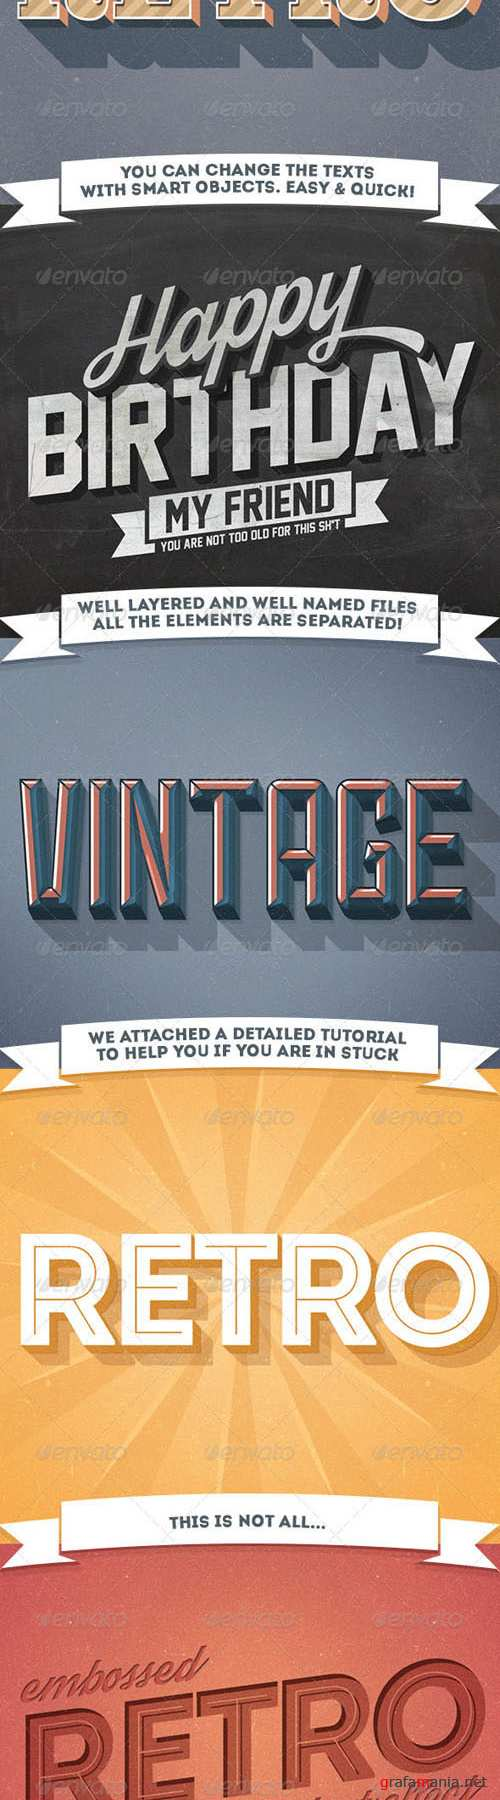 Graphicriver - 12 Various 3D Retro & Vintage Text Effects Pack 7332894